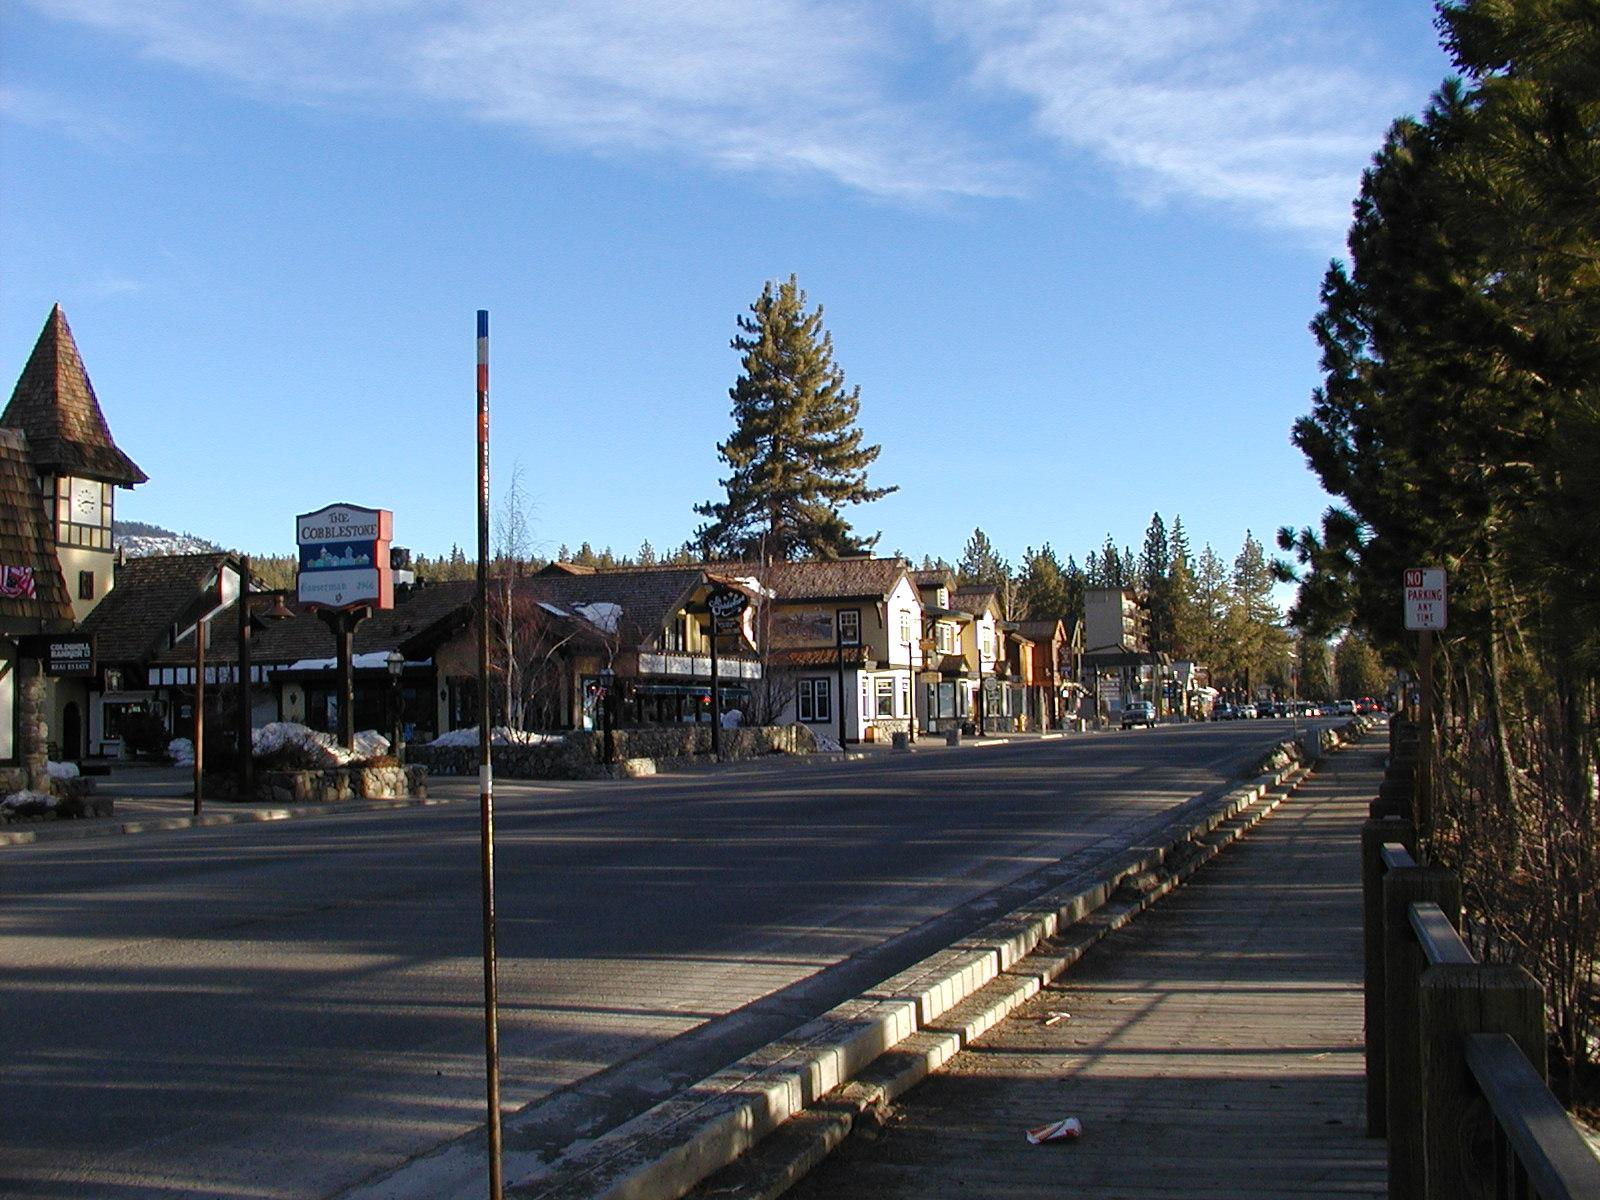 Tahoecity on lake tahoe